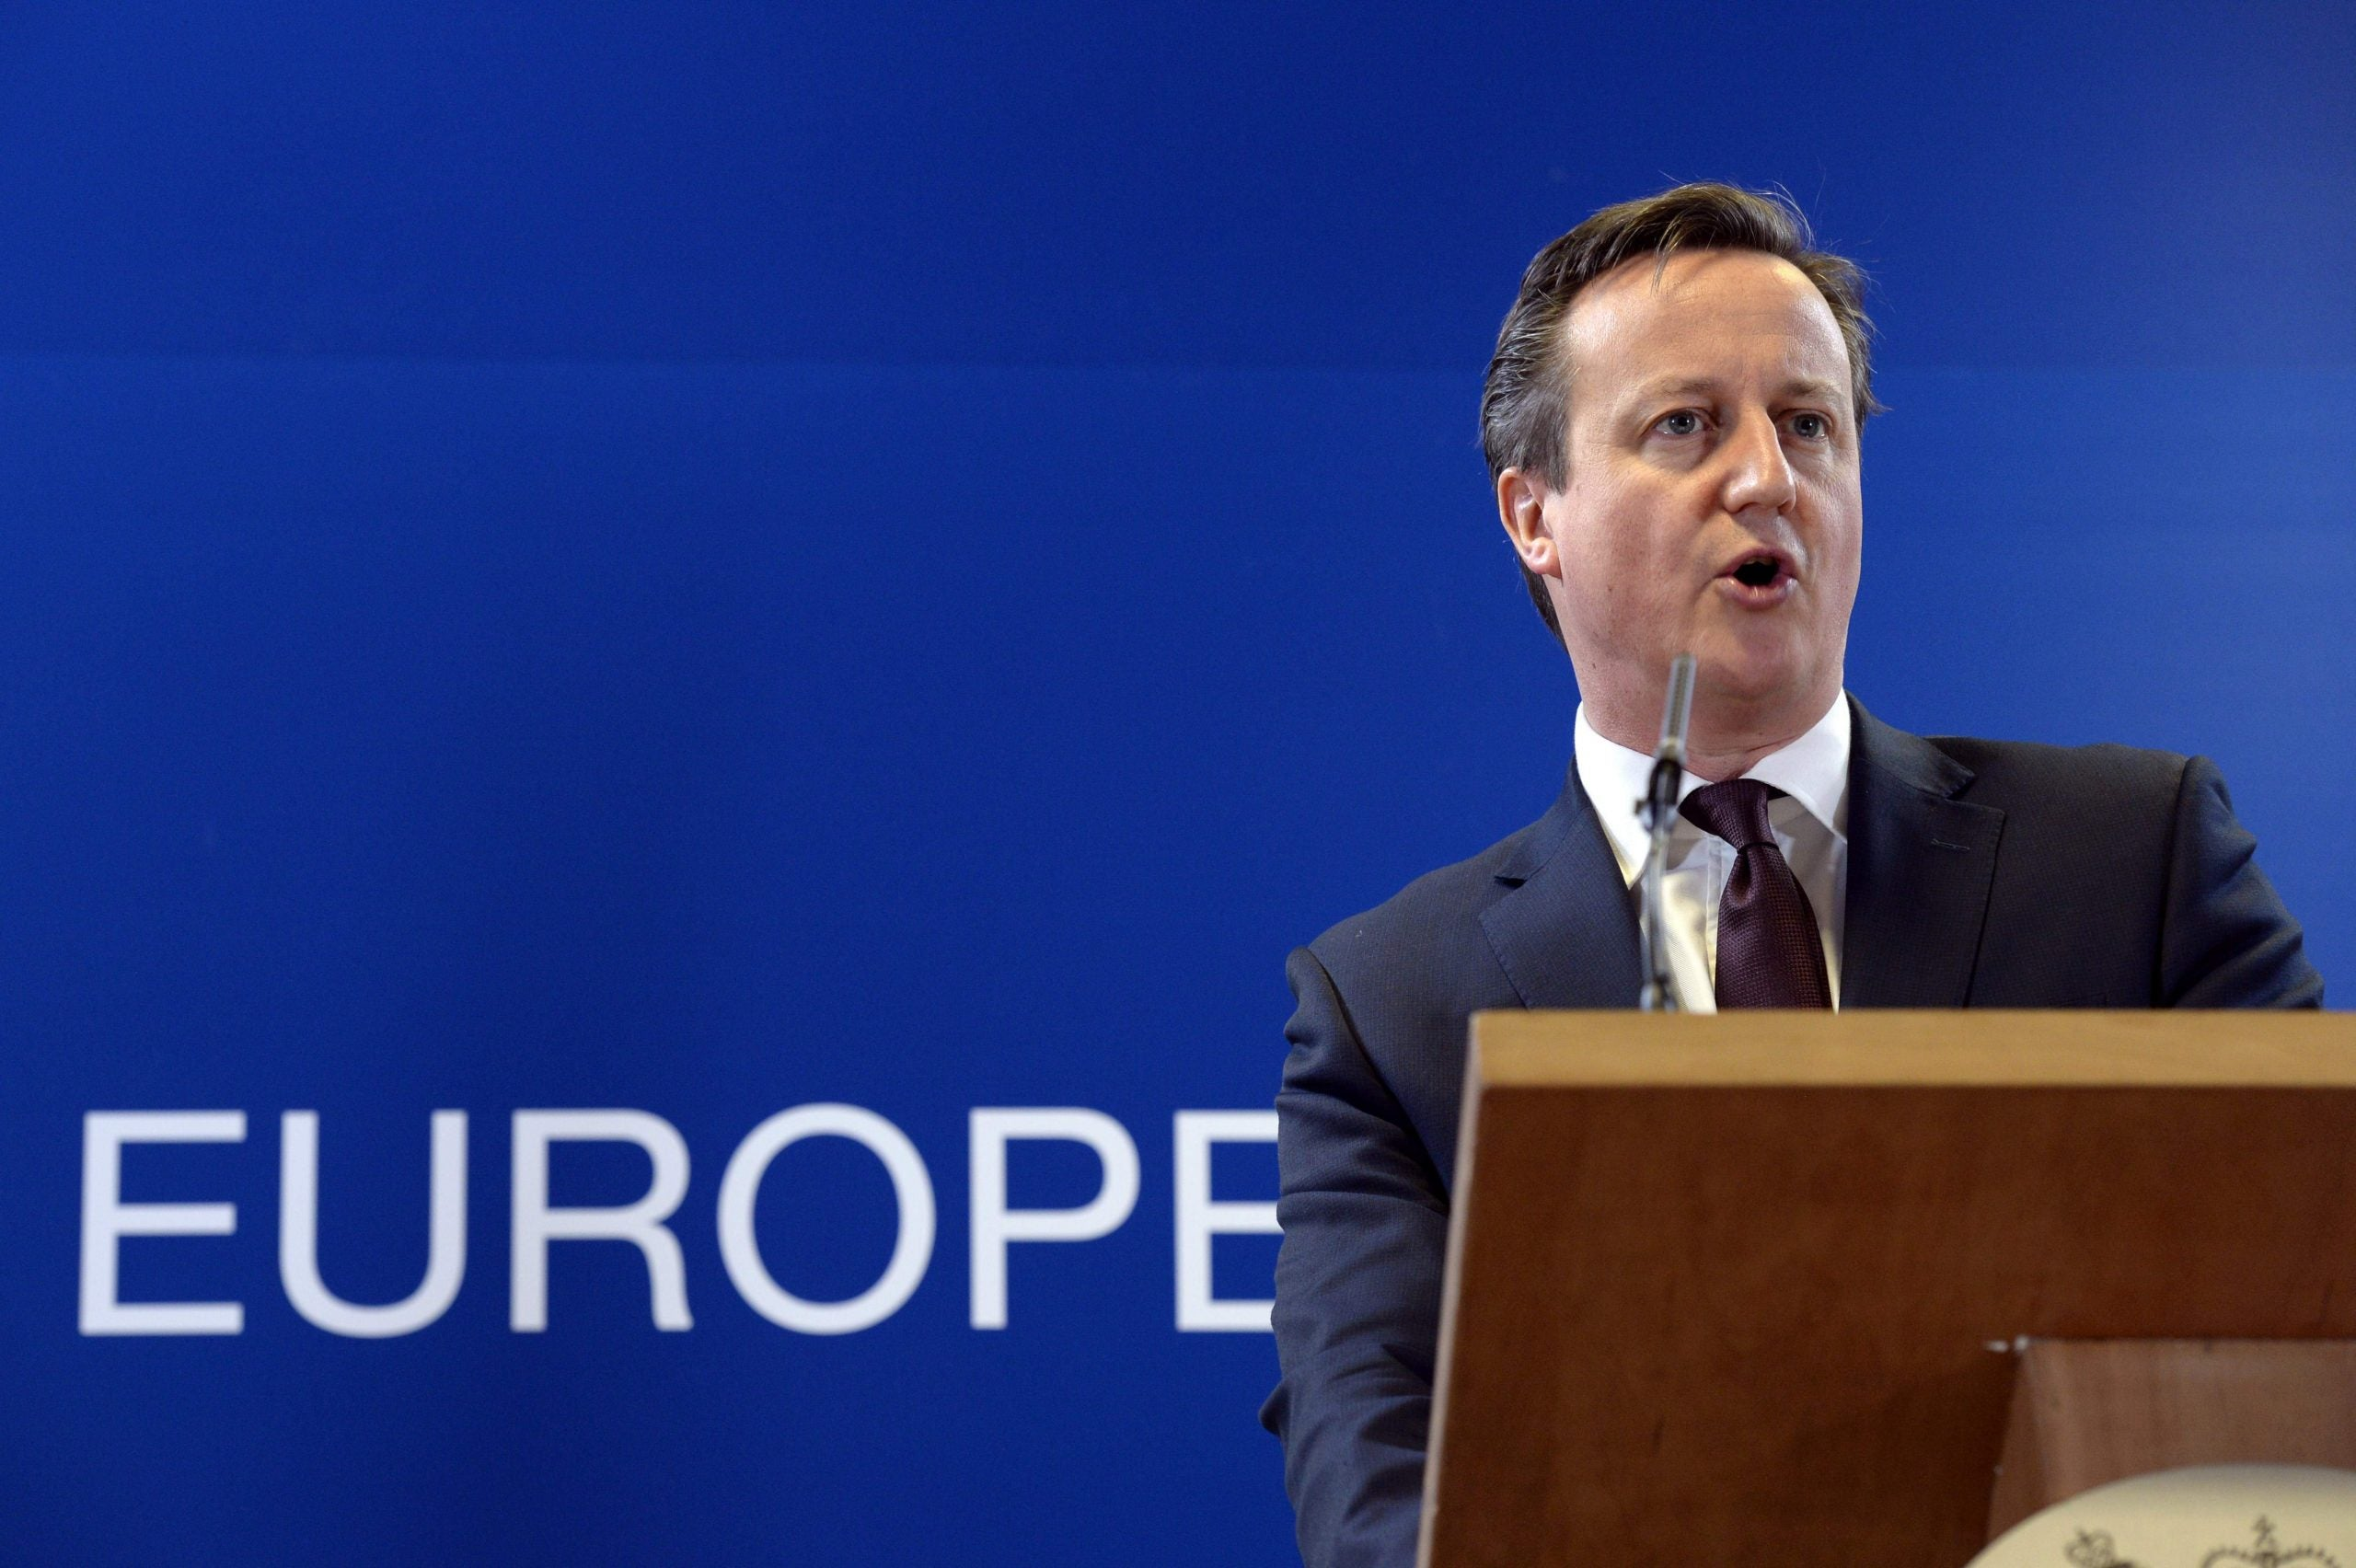 Don't worry - David Cameron's EU deal is one the left can support